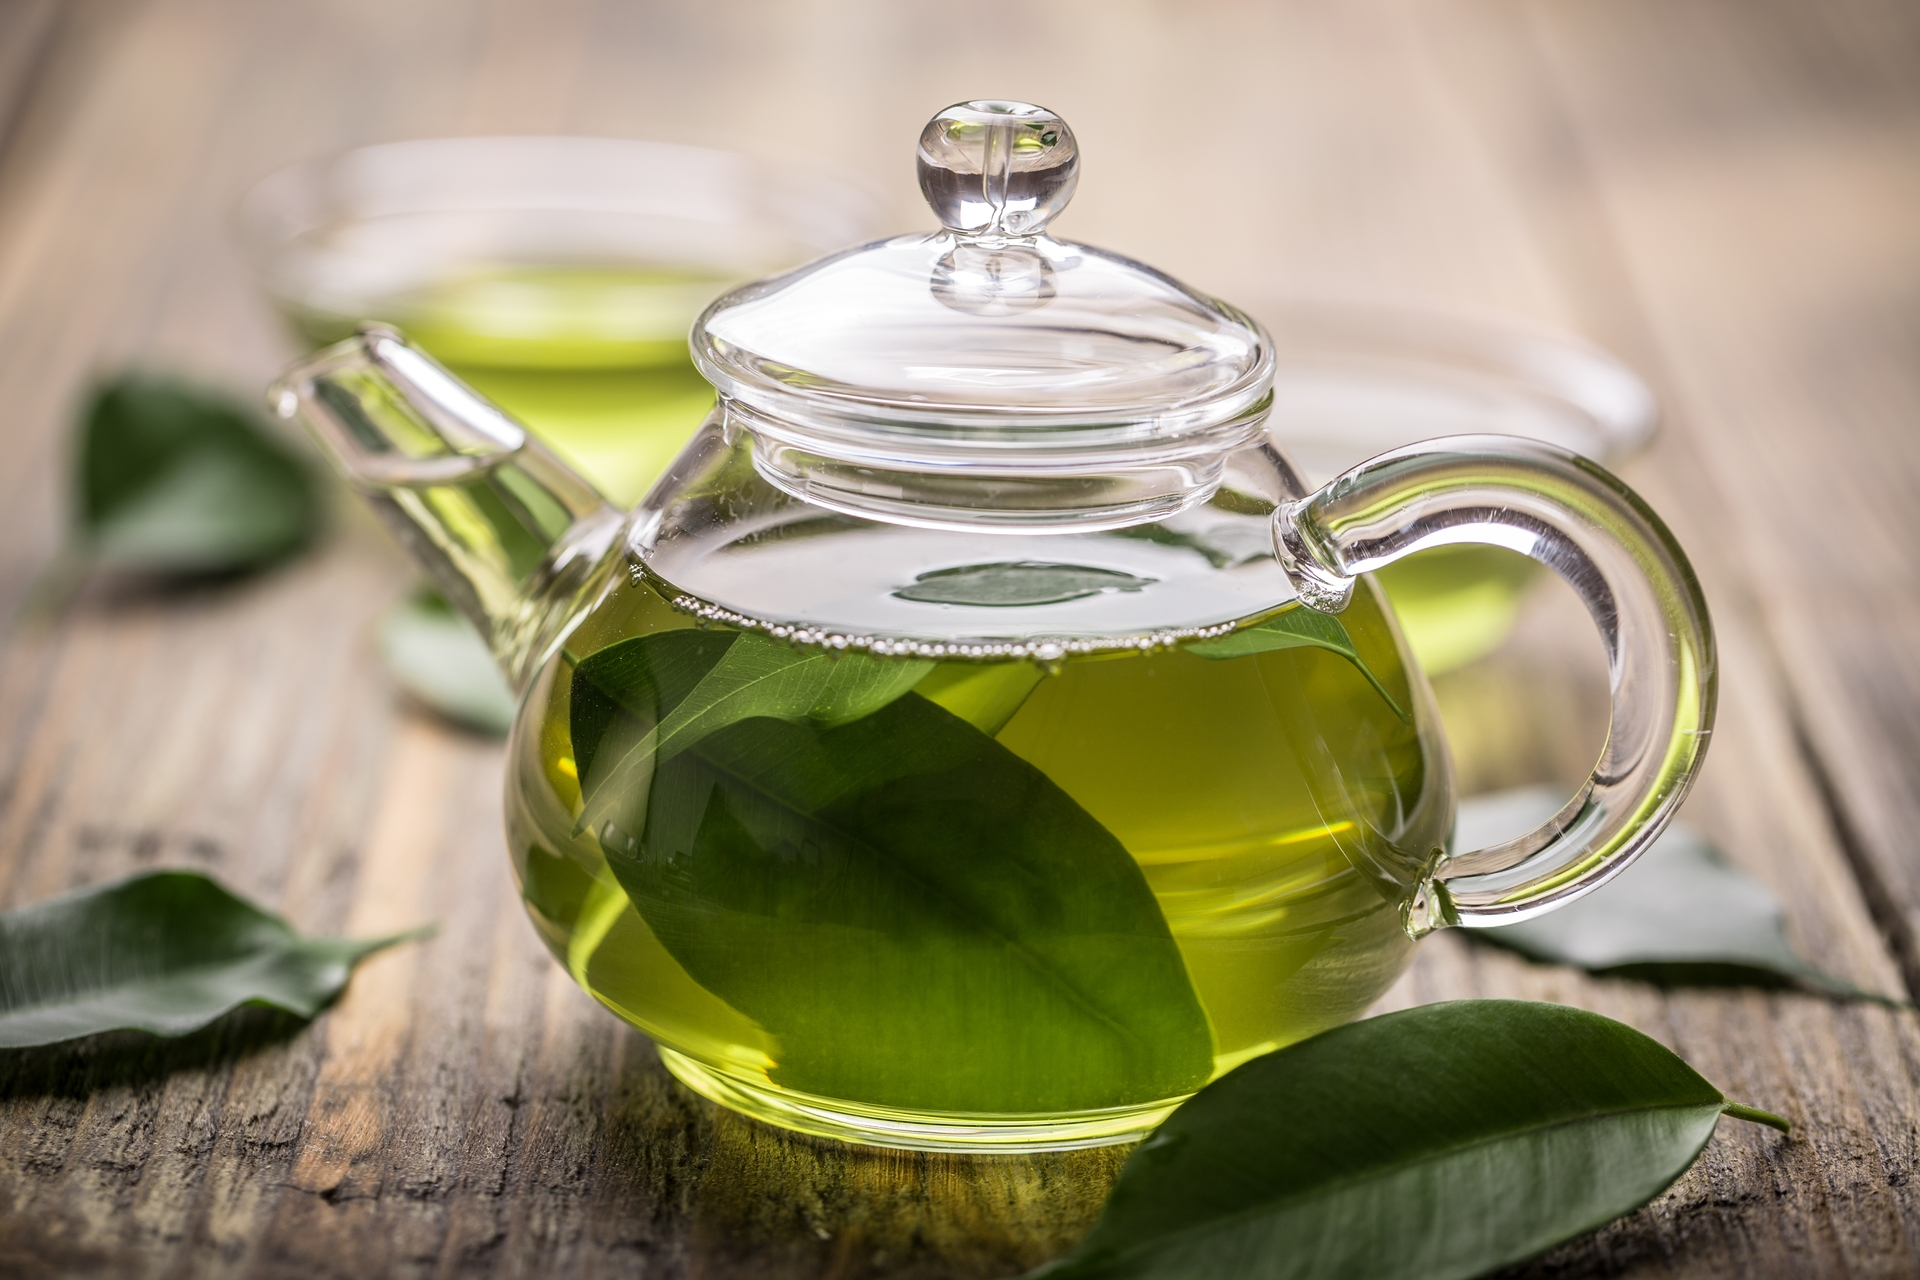 Glass teapot with green tea on wooden table